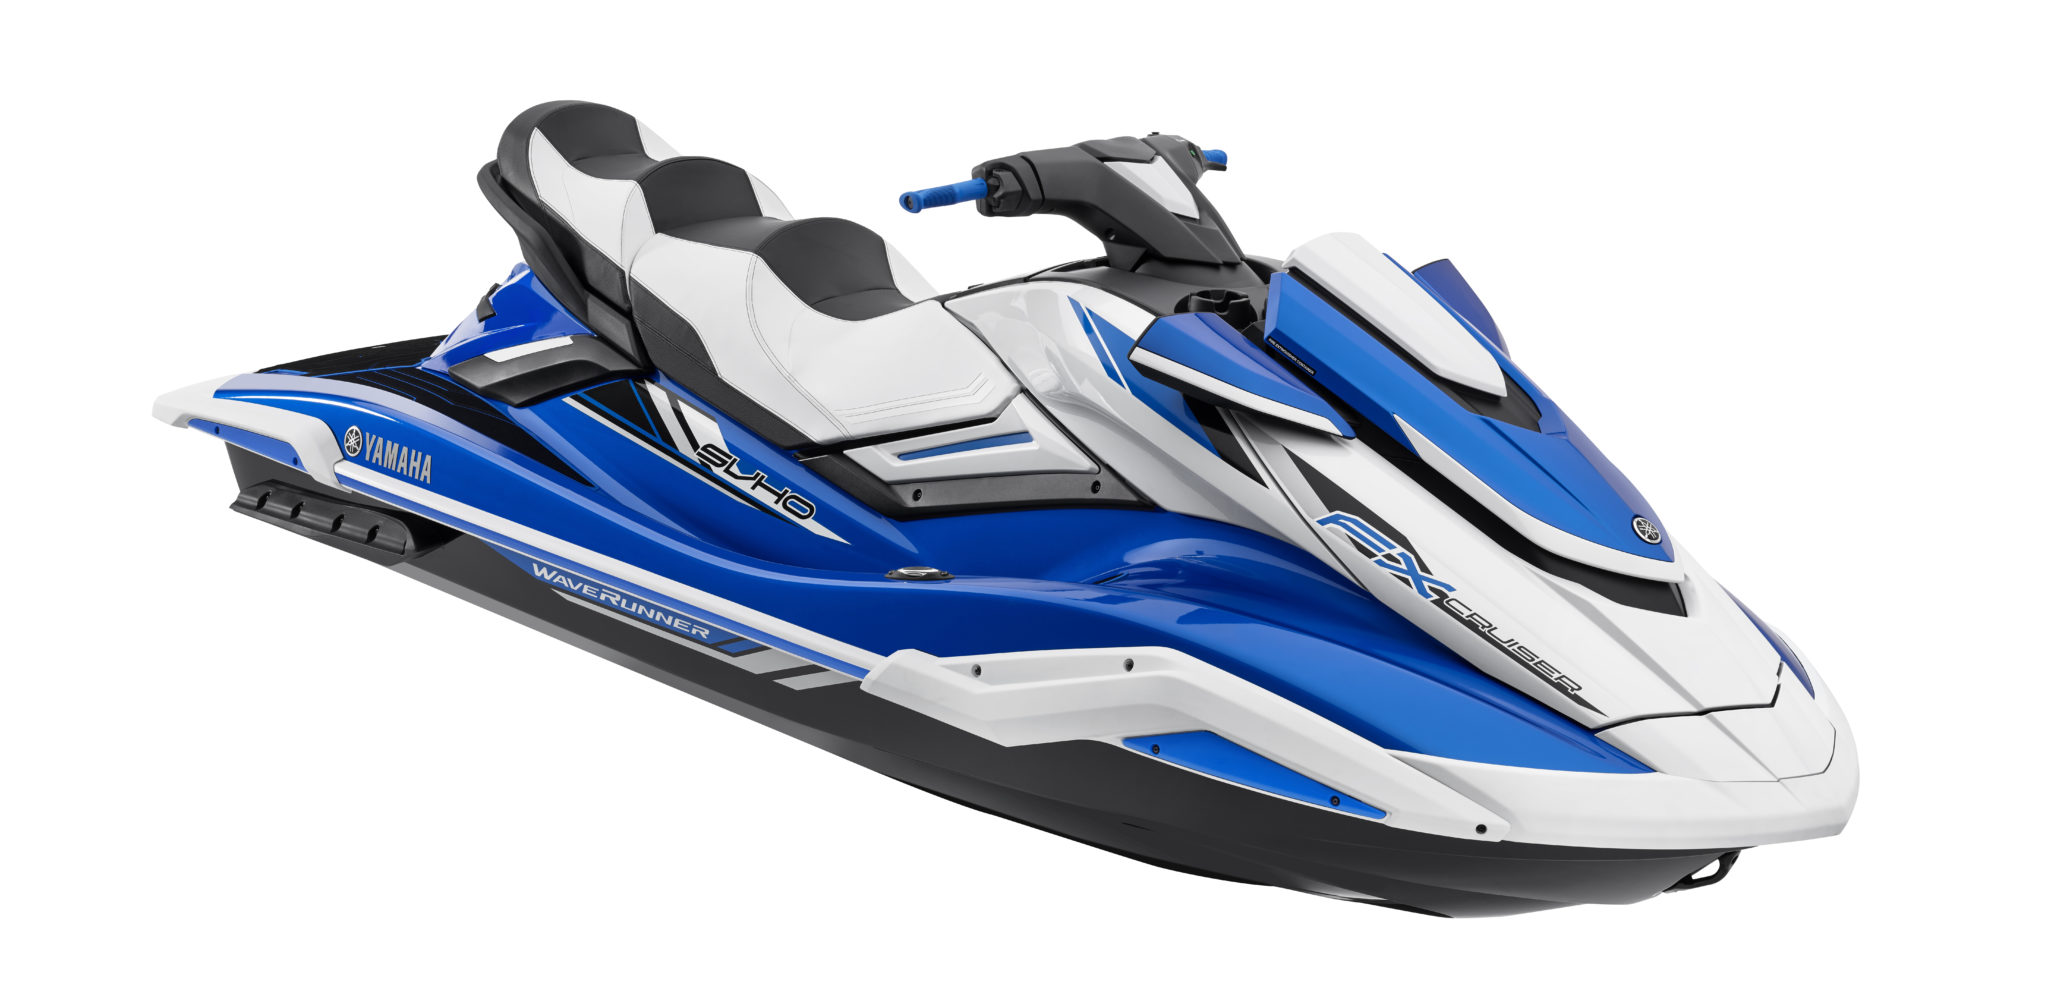 2019 Yamaha WaveRunner FX: Color touchscreen instrumentation